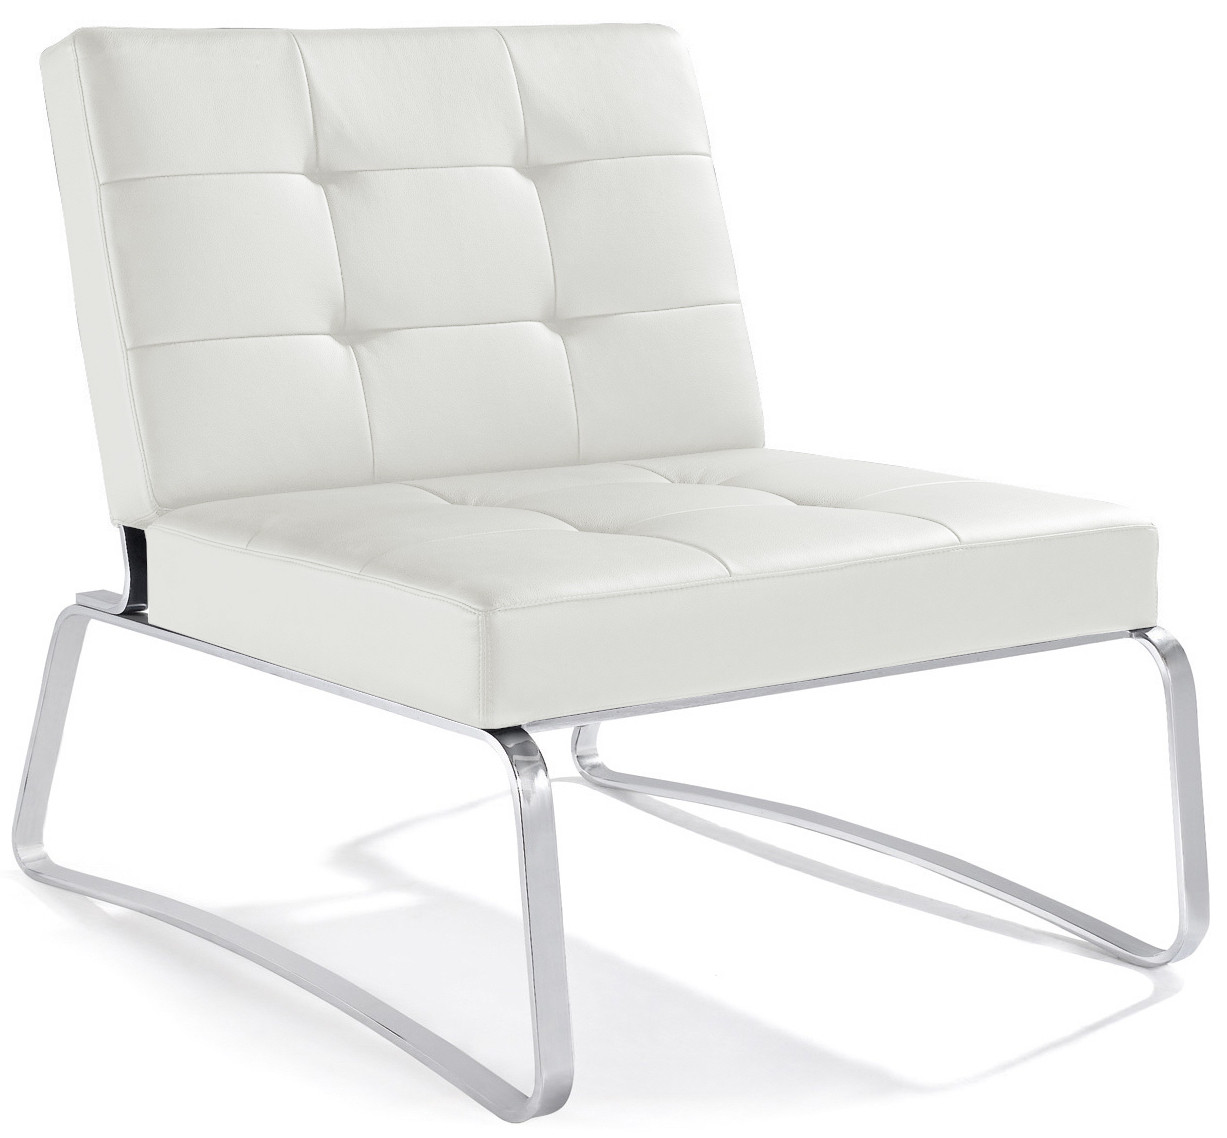 Hermes Lounge Chair By Nuevo Living Home And Office